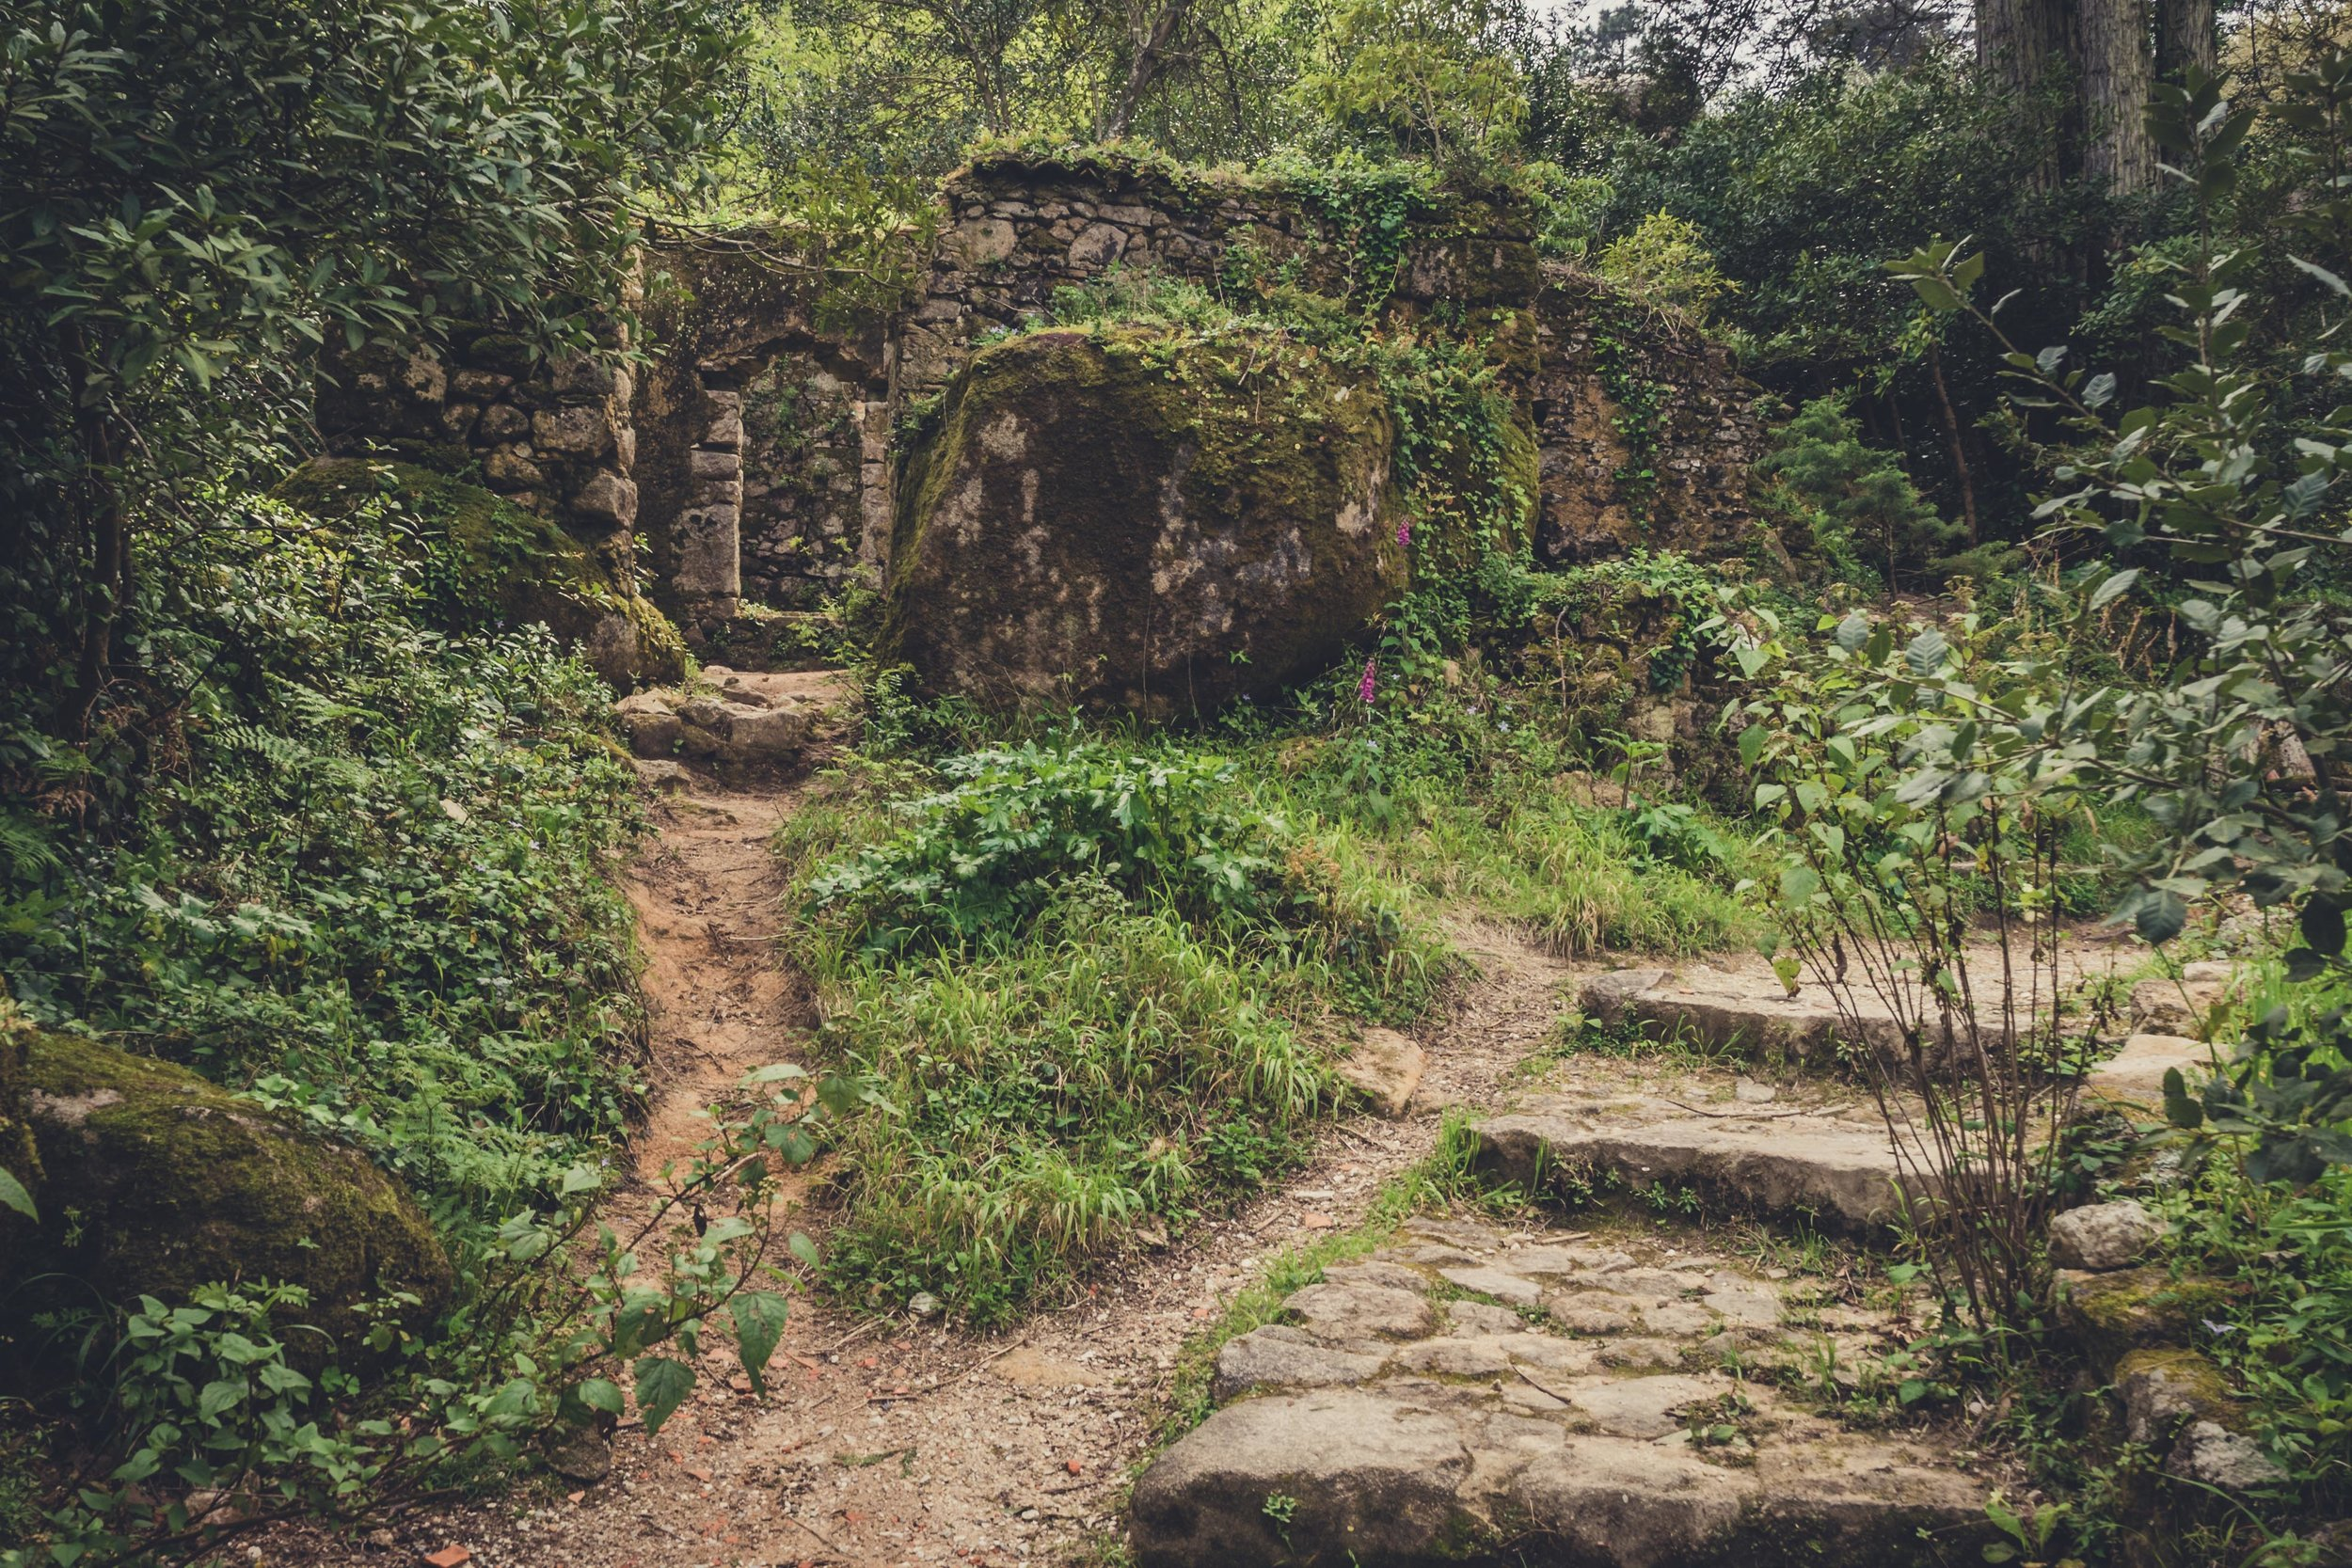 Portugal. Travel. Sintra. Sunshine. Hotel. History. view. room with a view. pena palace.  palace. town. old town. castle. castelo dos mouros. on the bridge. Convent of the Capuchos. little door.jpg